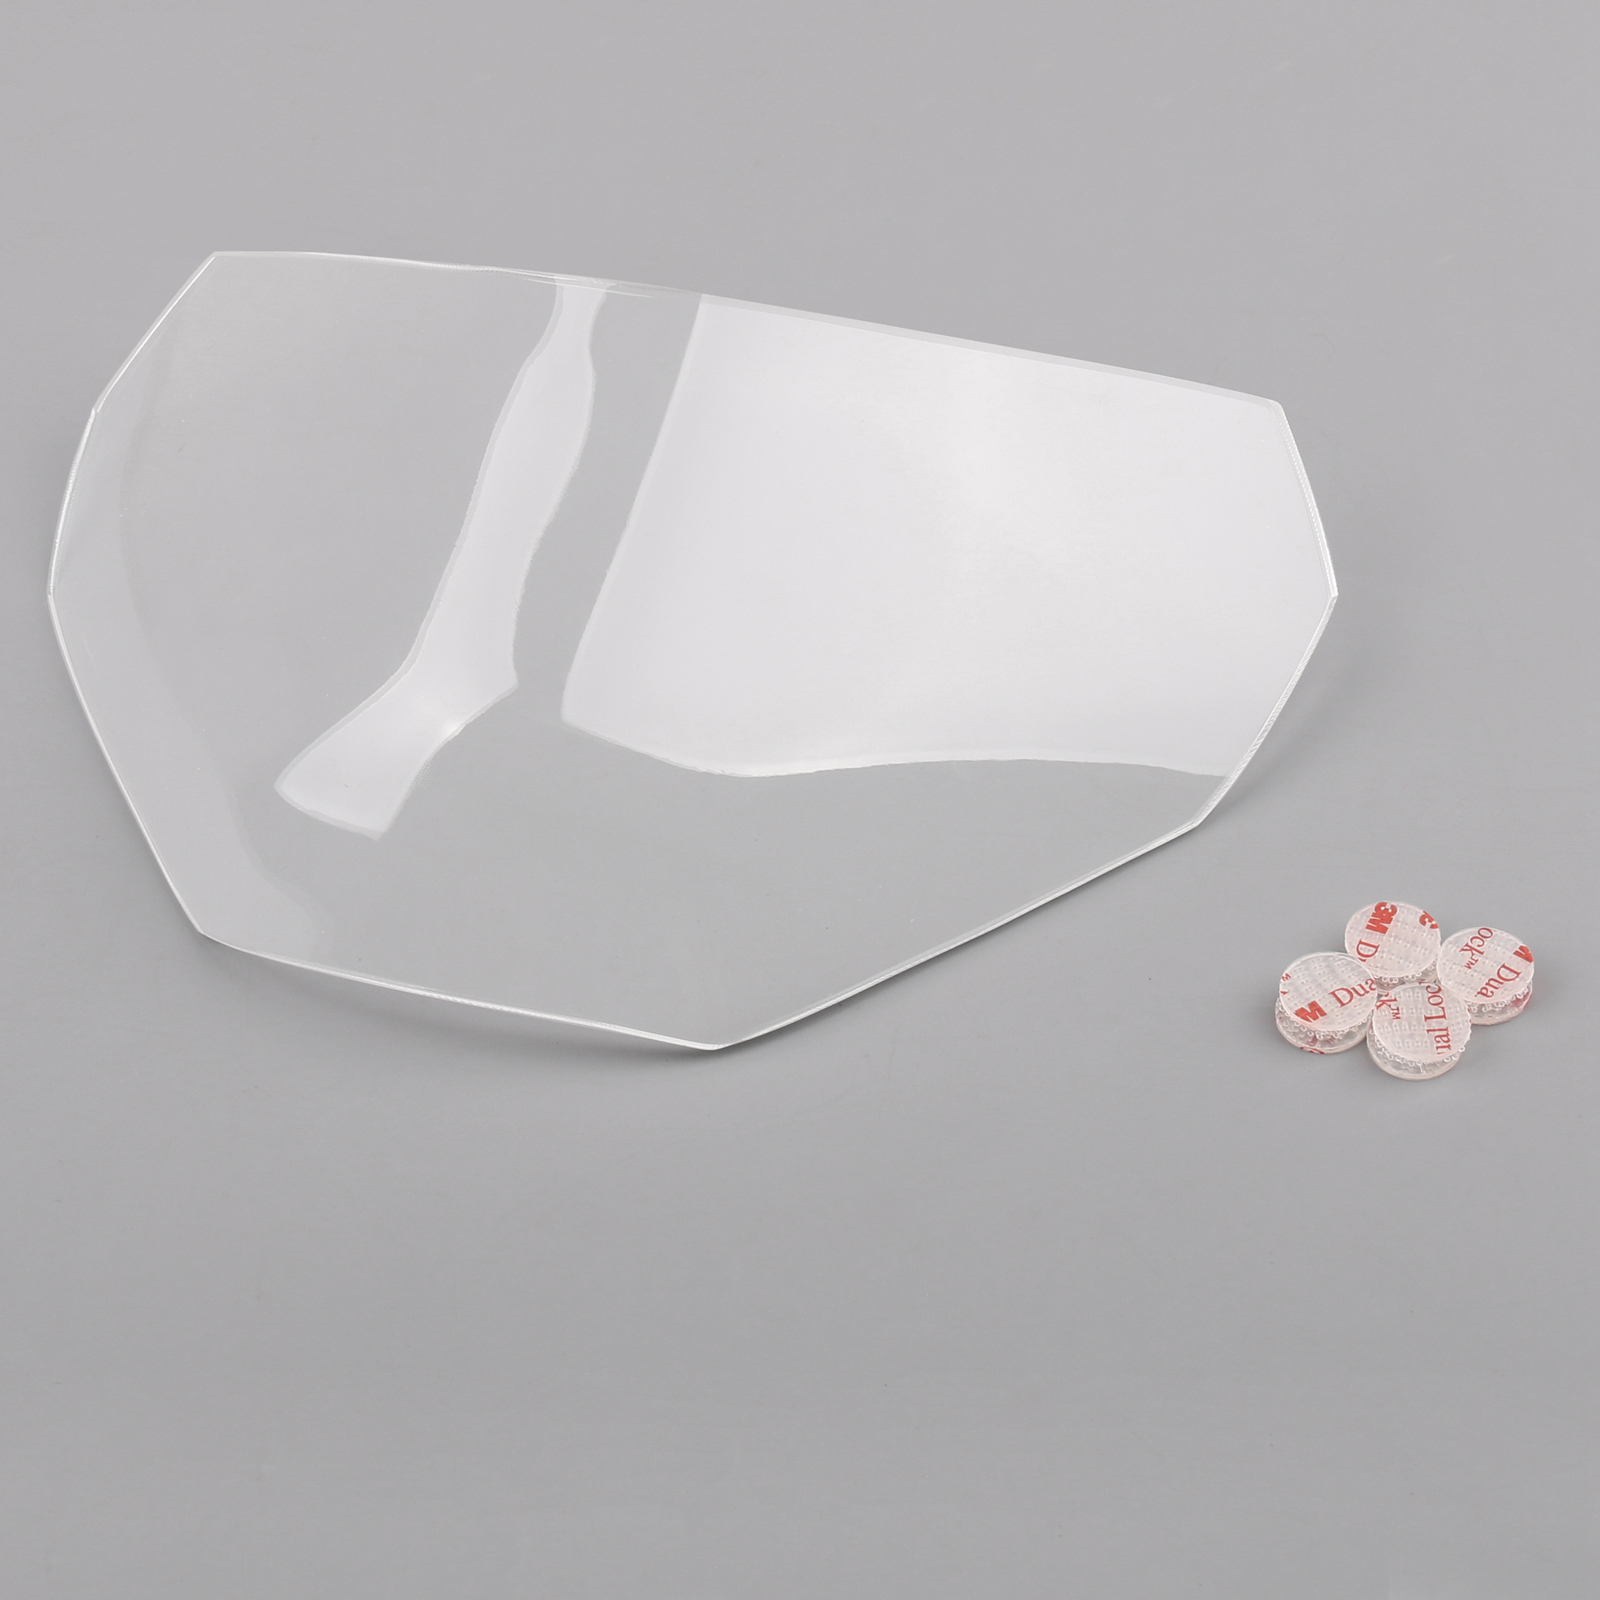 Fumee Front Phare Cover Lens Cover Guard Pour Yamaha MT-09 2017-2018